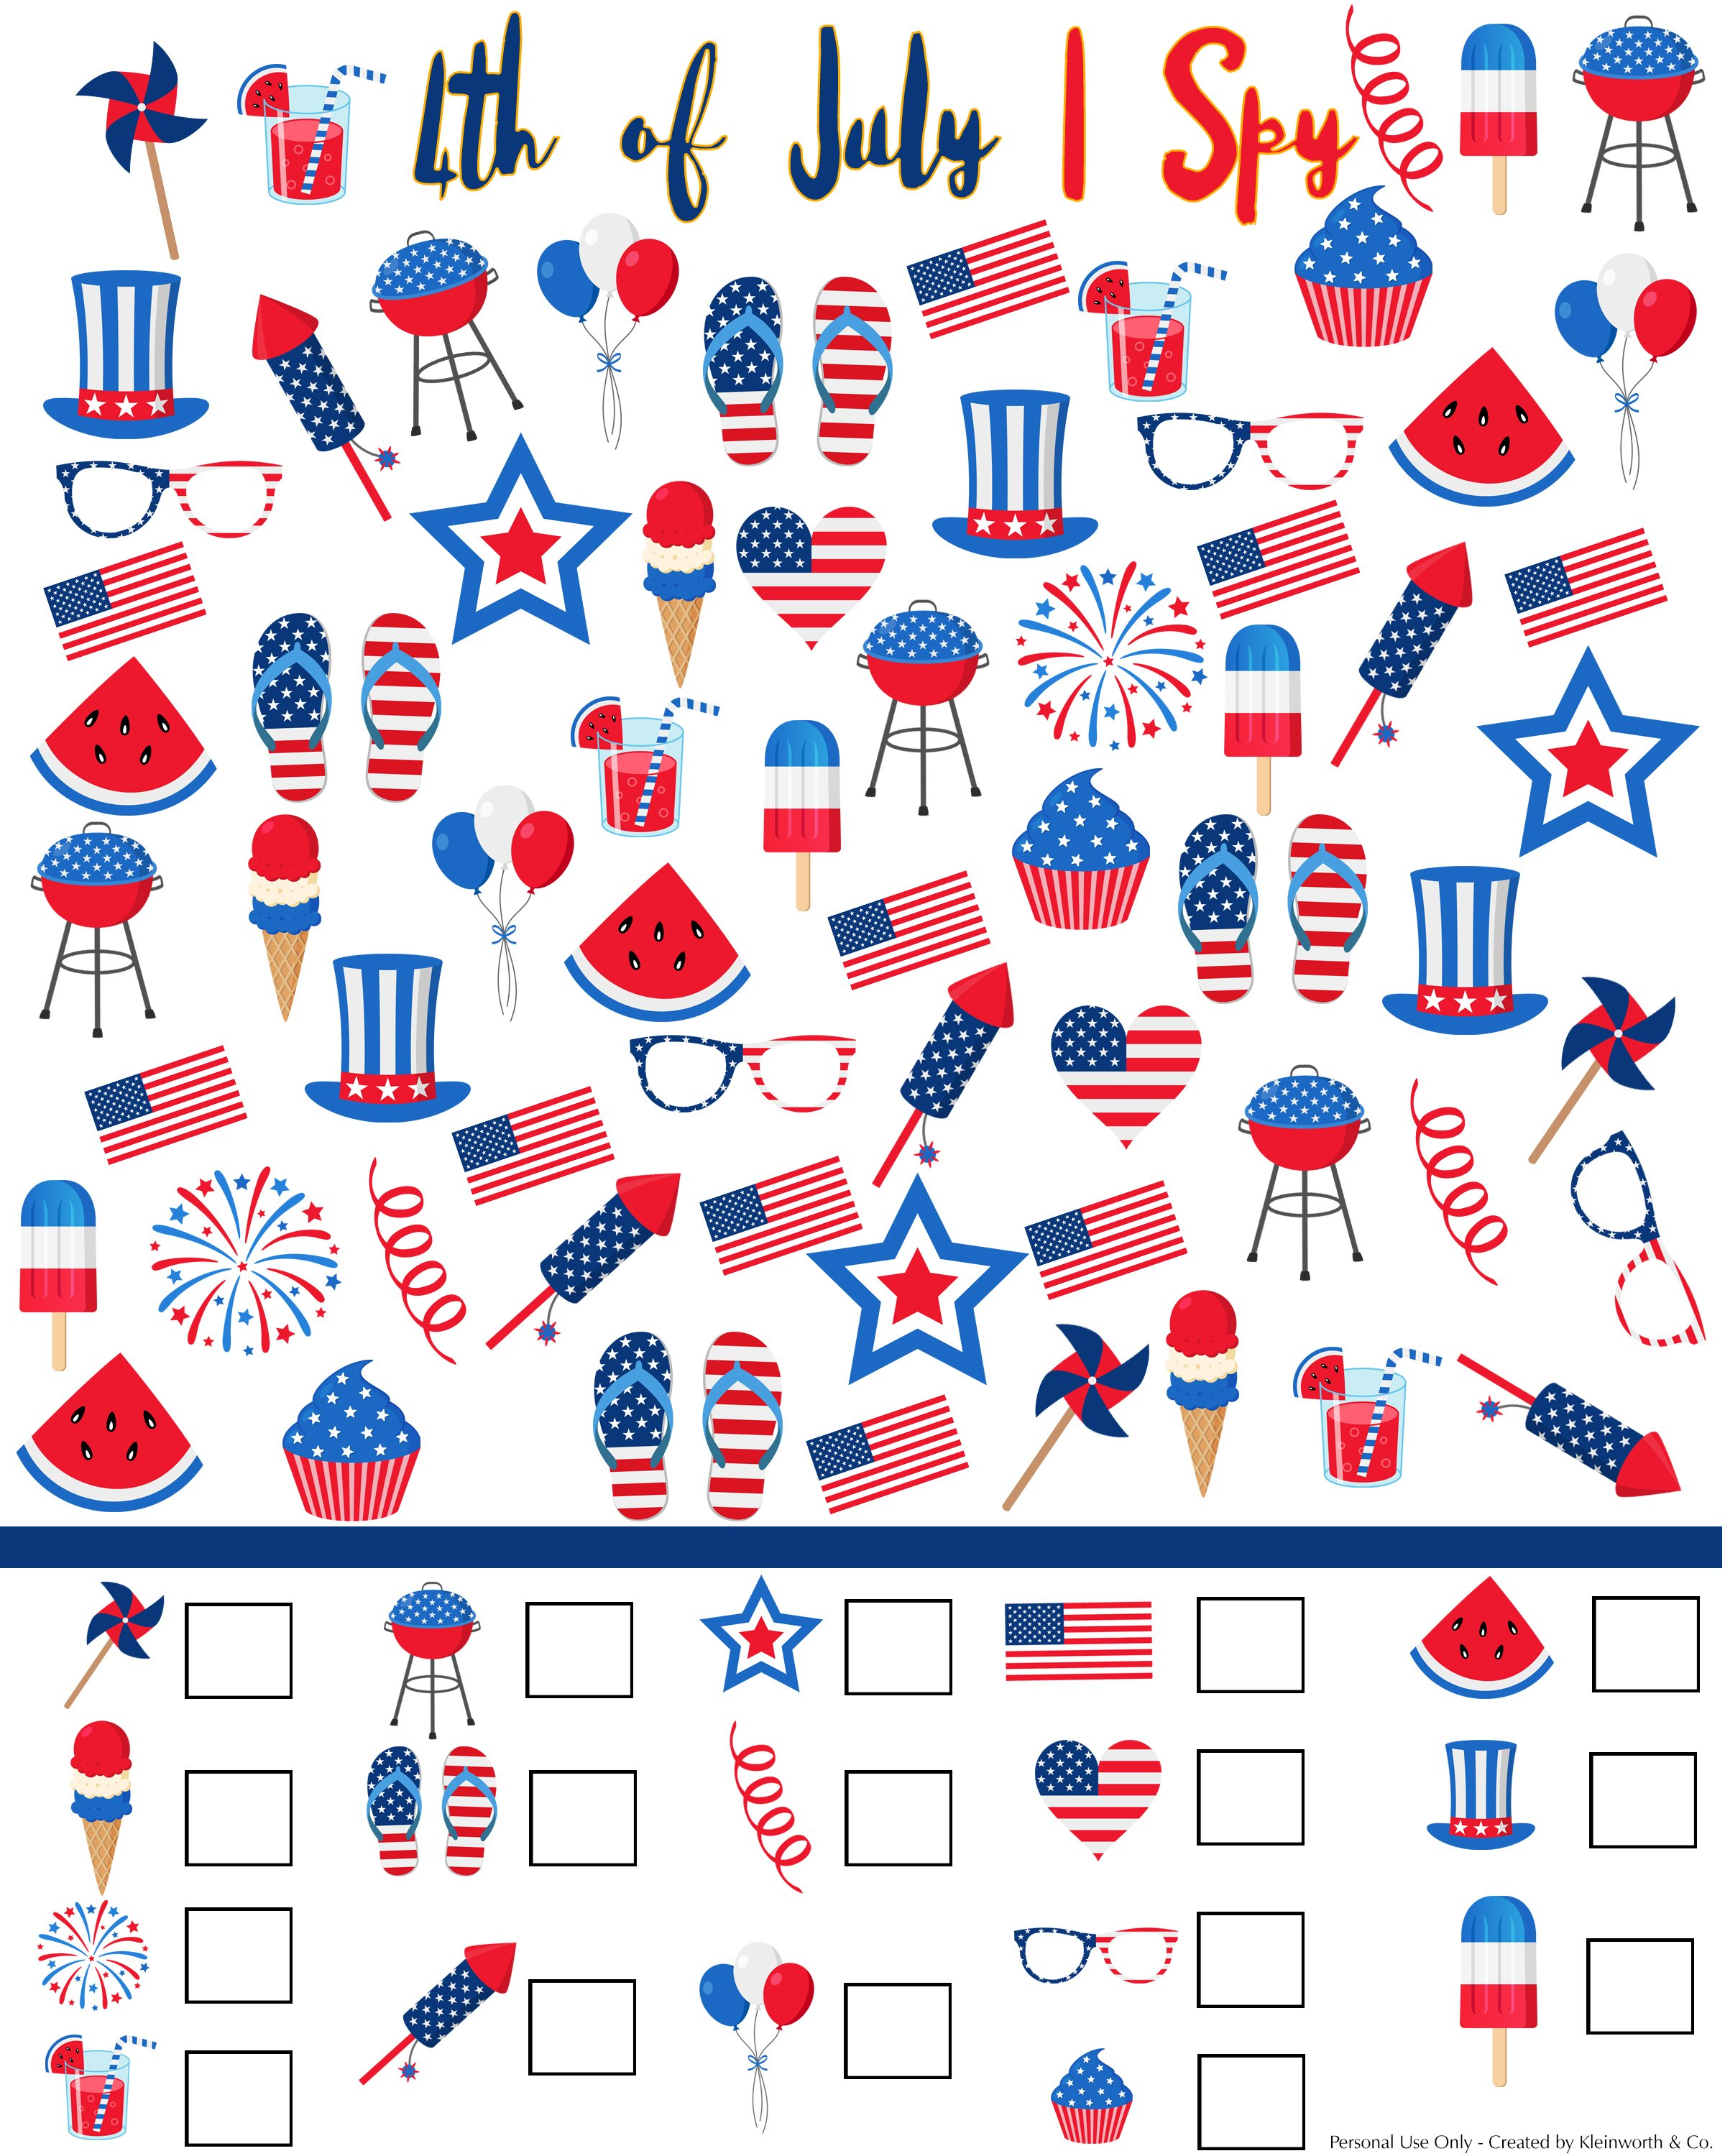 graphic about I Spy Printable referred to as 4th of July I Spy Printable - Kleinworth Co